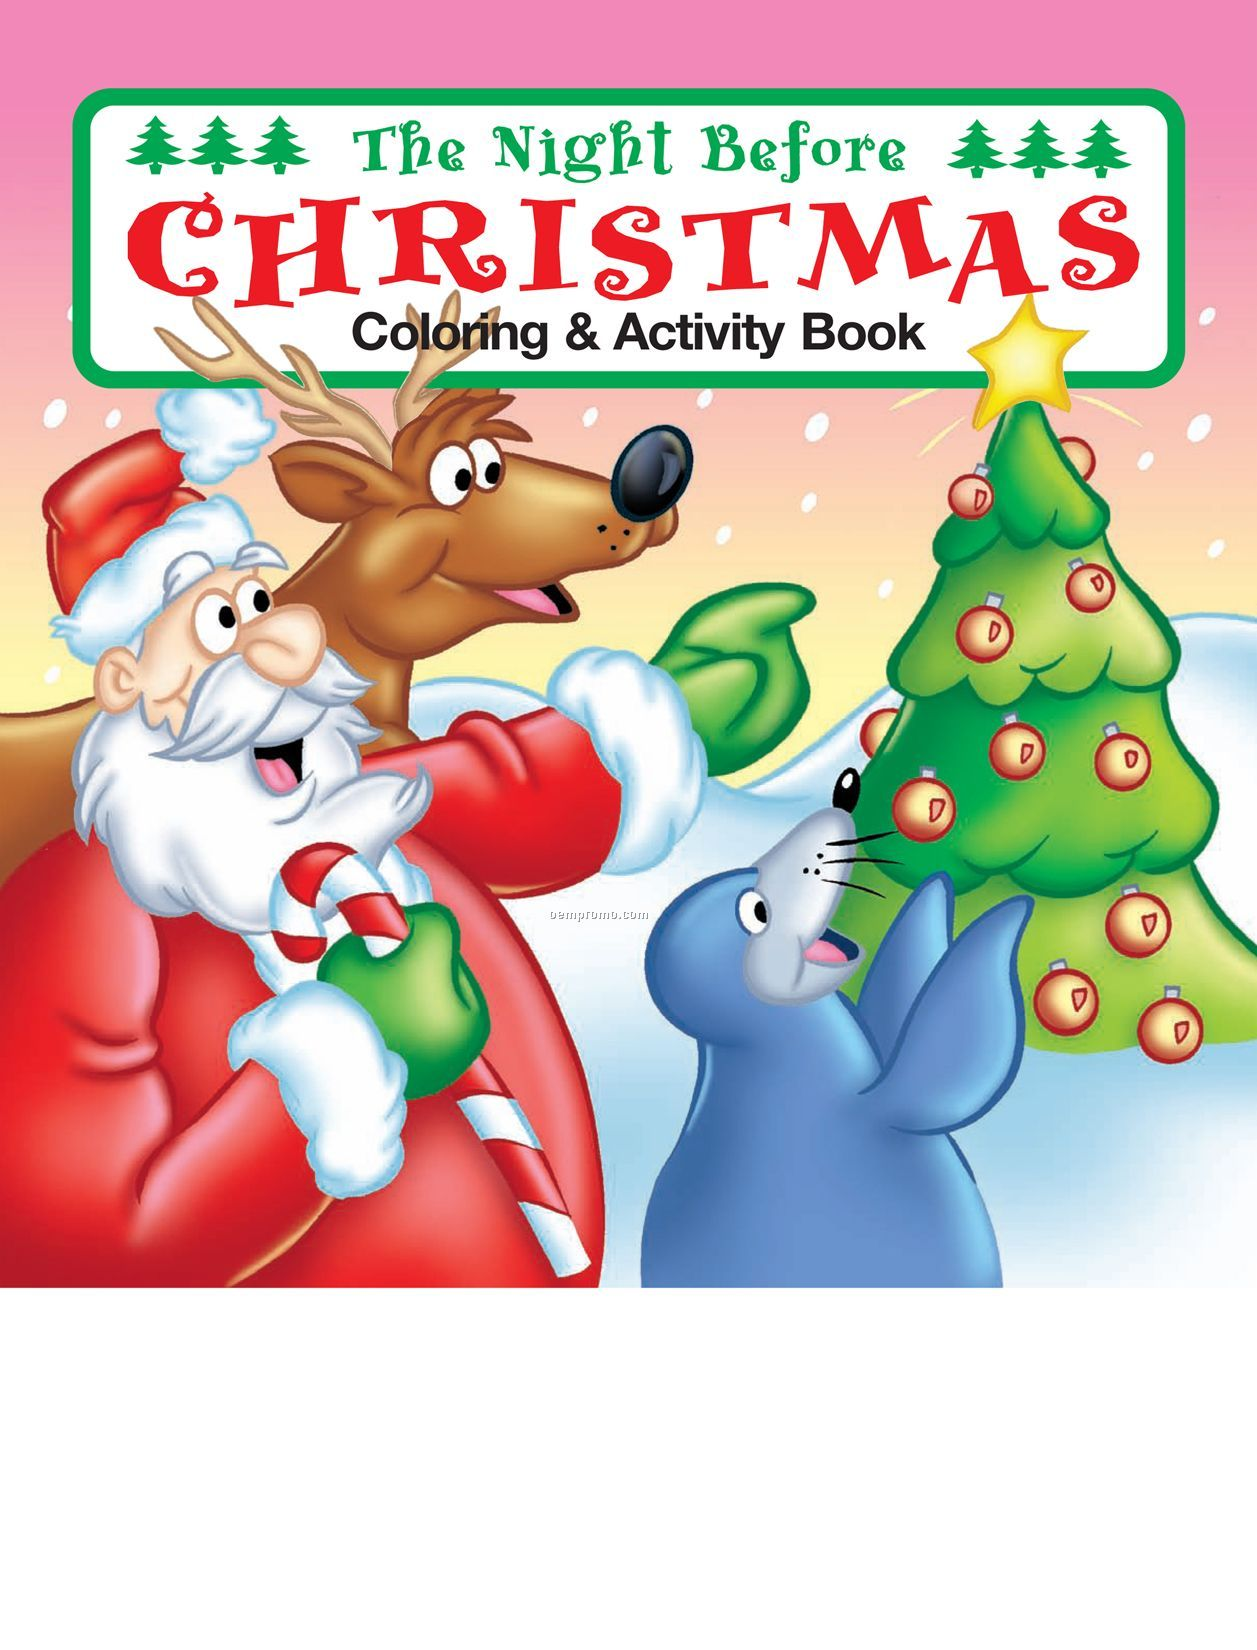 Christmas Coloring Books In Bulk With The Night Before Book China Wholesale